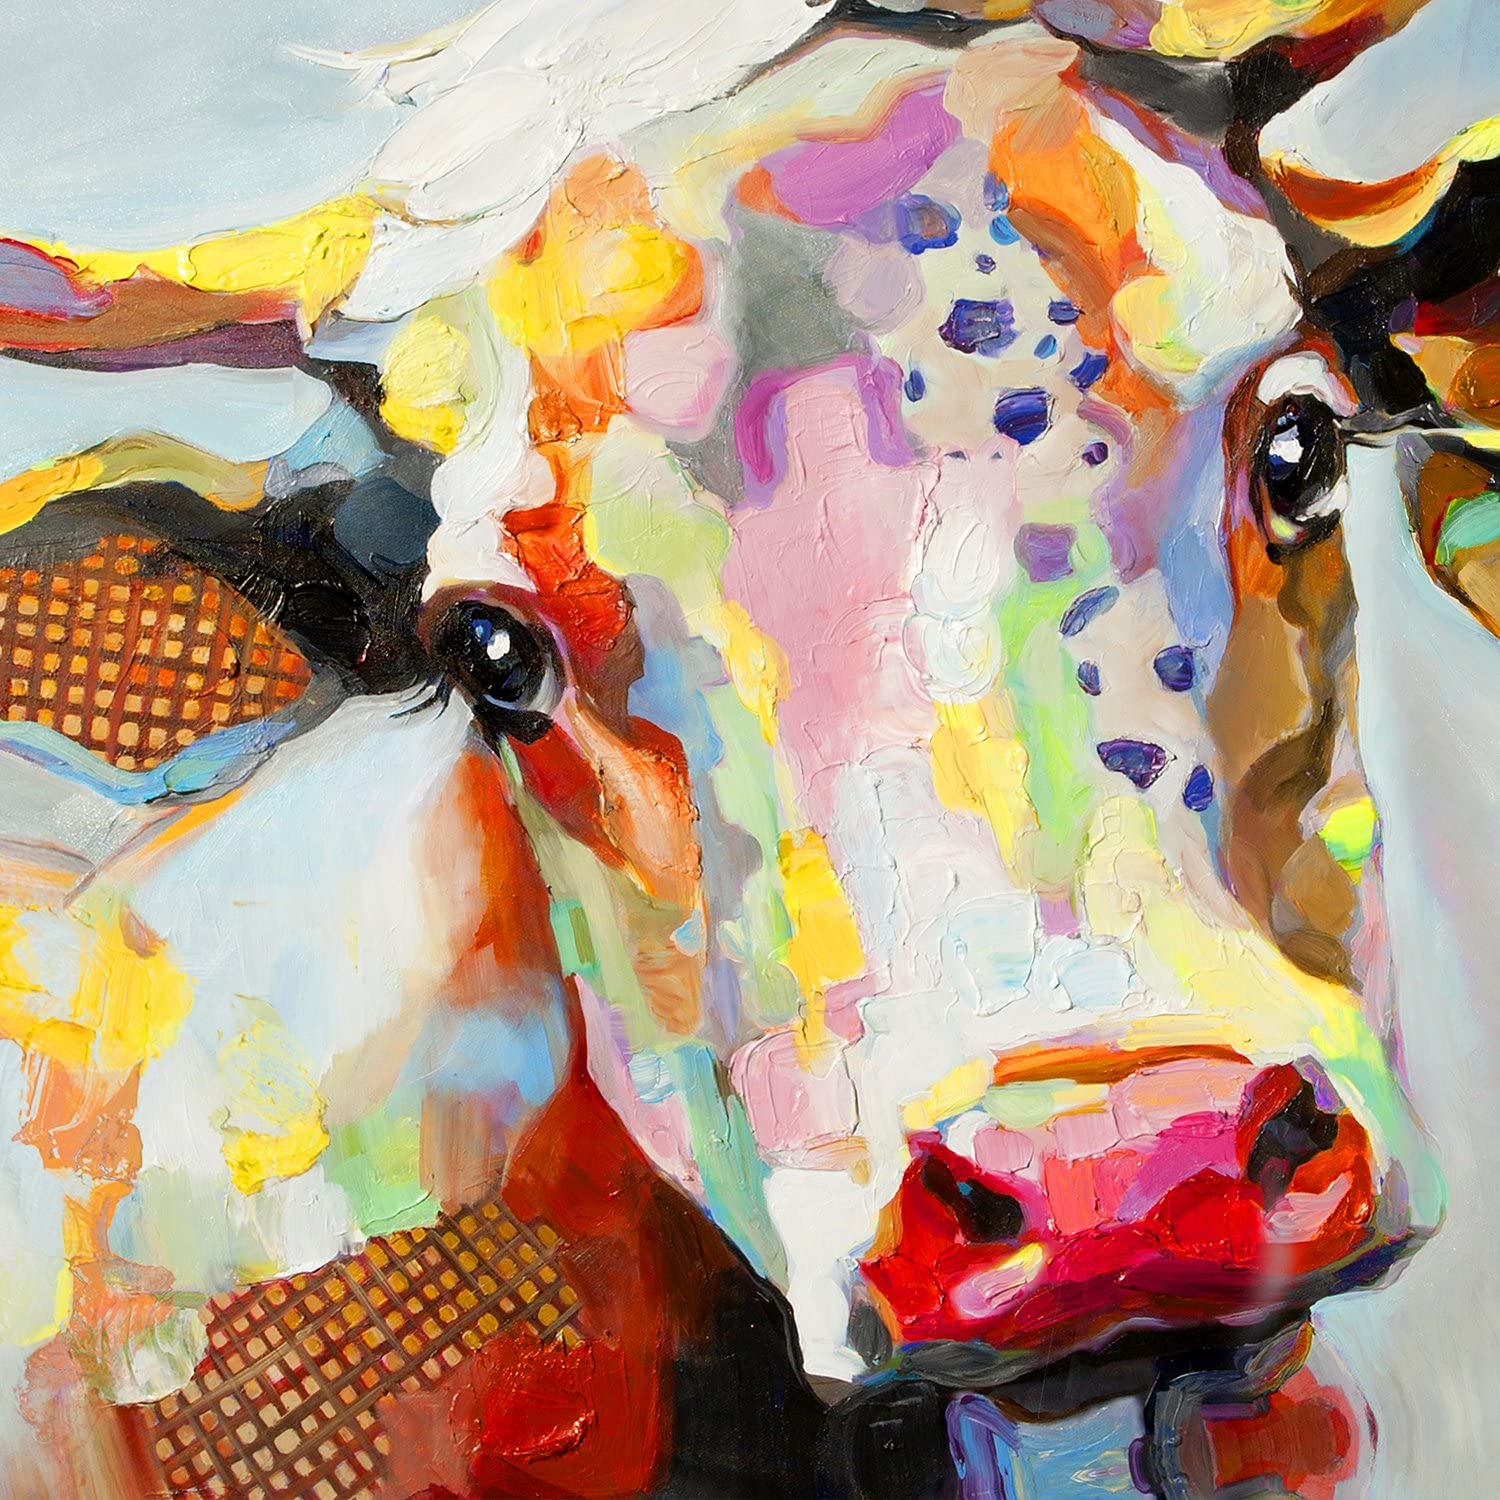 Colourful Cow Splatter Wall Art Printed Canvas Stretched Over Solid Pine Frame